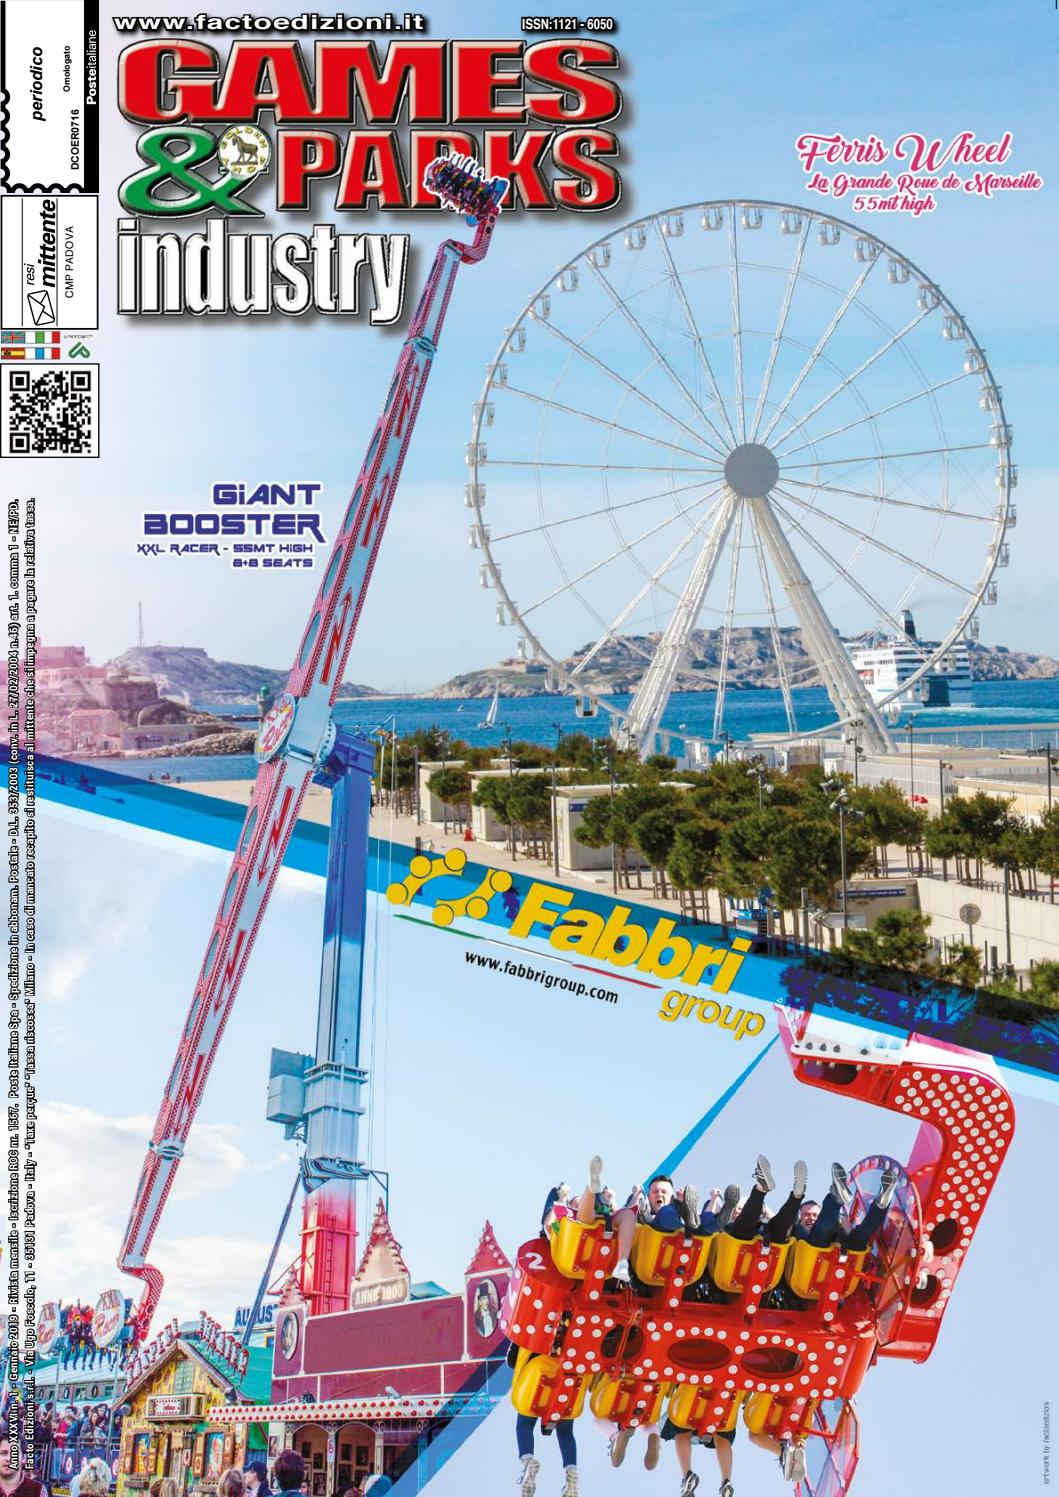 Games   Parks Industry January 2019 by Games   Parks Industry - issuu 9757f1e1d722